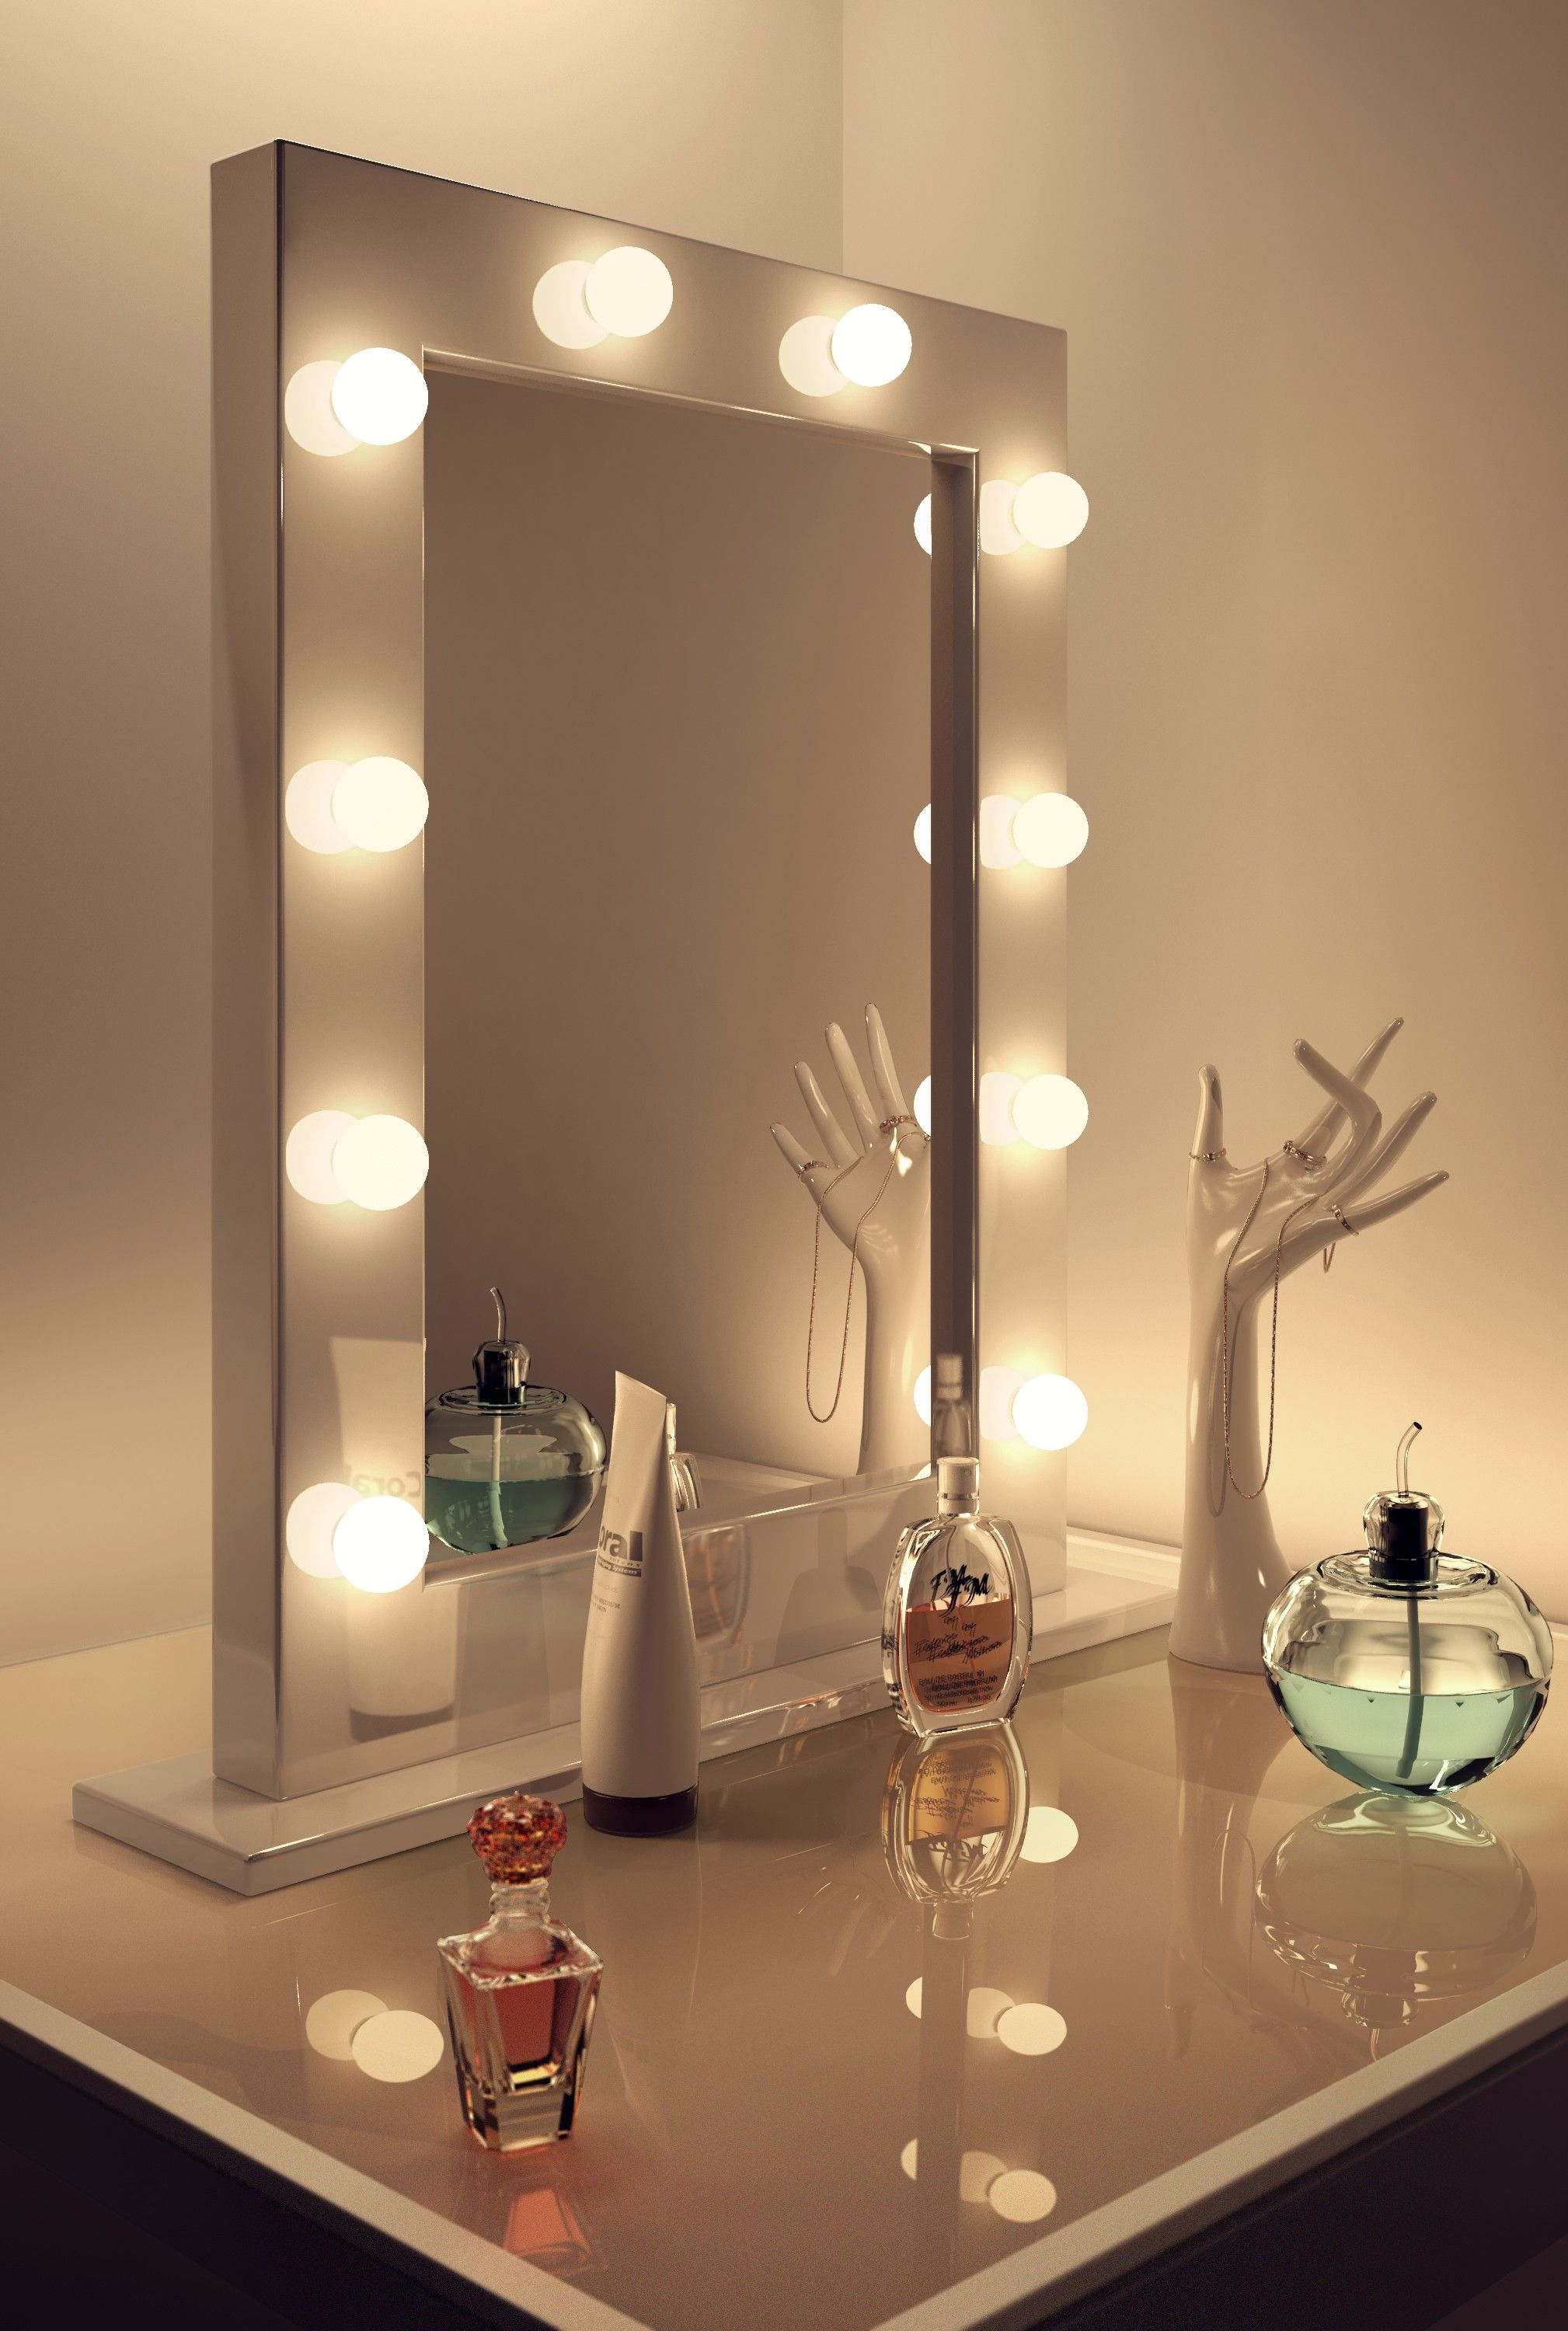 Rectangular Vanity Mirror With Black Frame Which Combined With. Rectangular Vanity Mirror With Black Frame Which Combined With